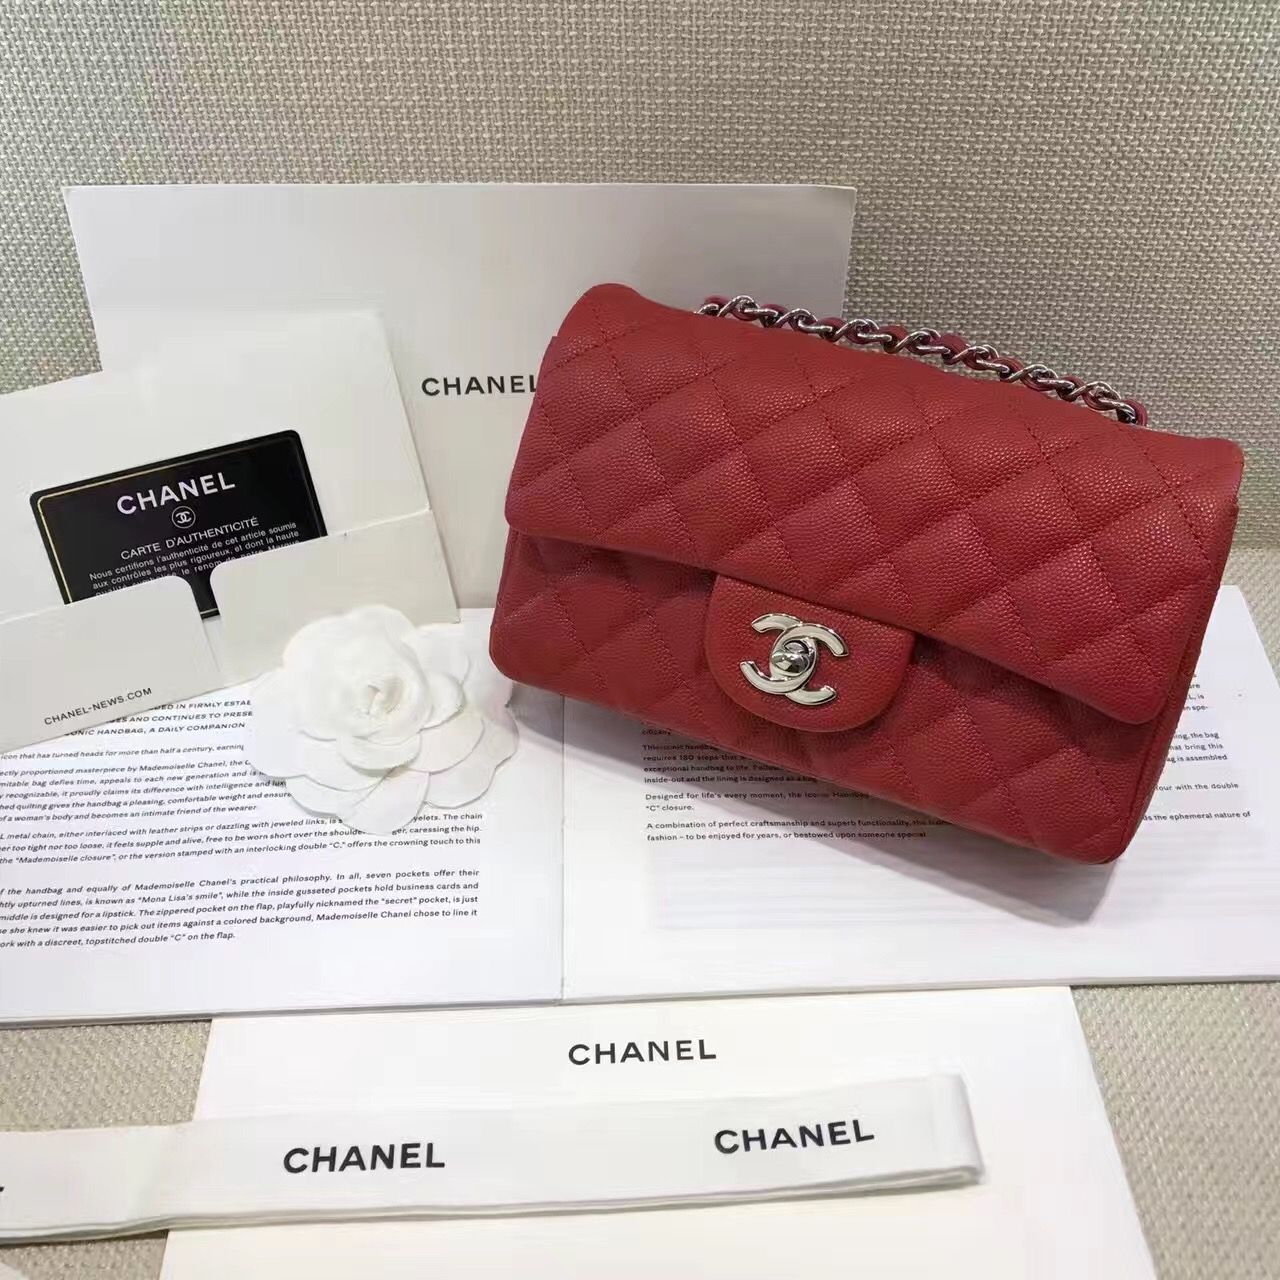 2e8df3d3d8f7 Authentic Quality 1:1 Mirror Replica Chanel Classic Flap Bag Mini Red  Caviar Leather Silver Hardware A69900